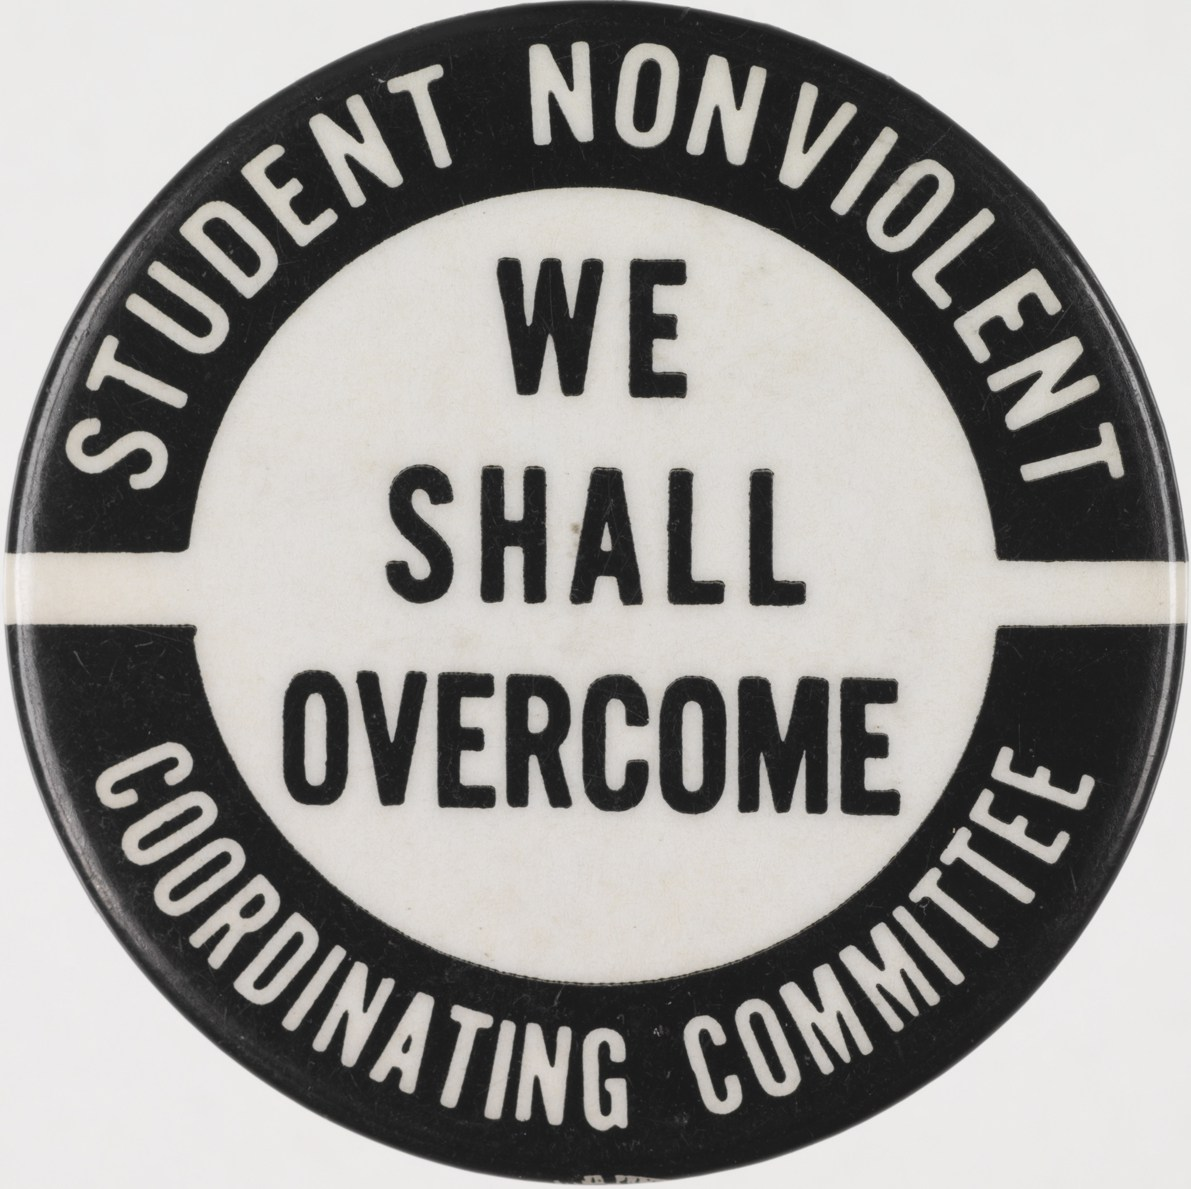 Student Nonviolent Coordinating Committee Badge